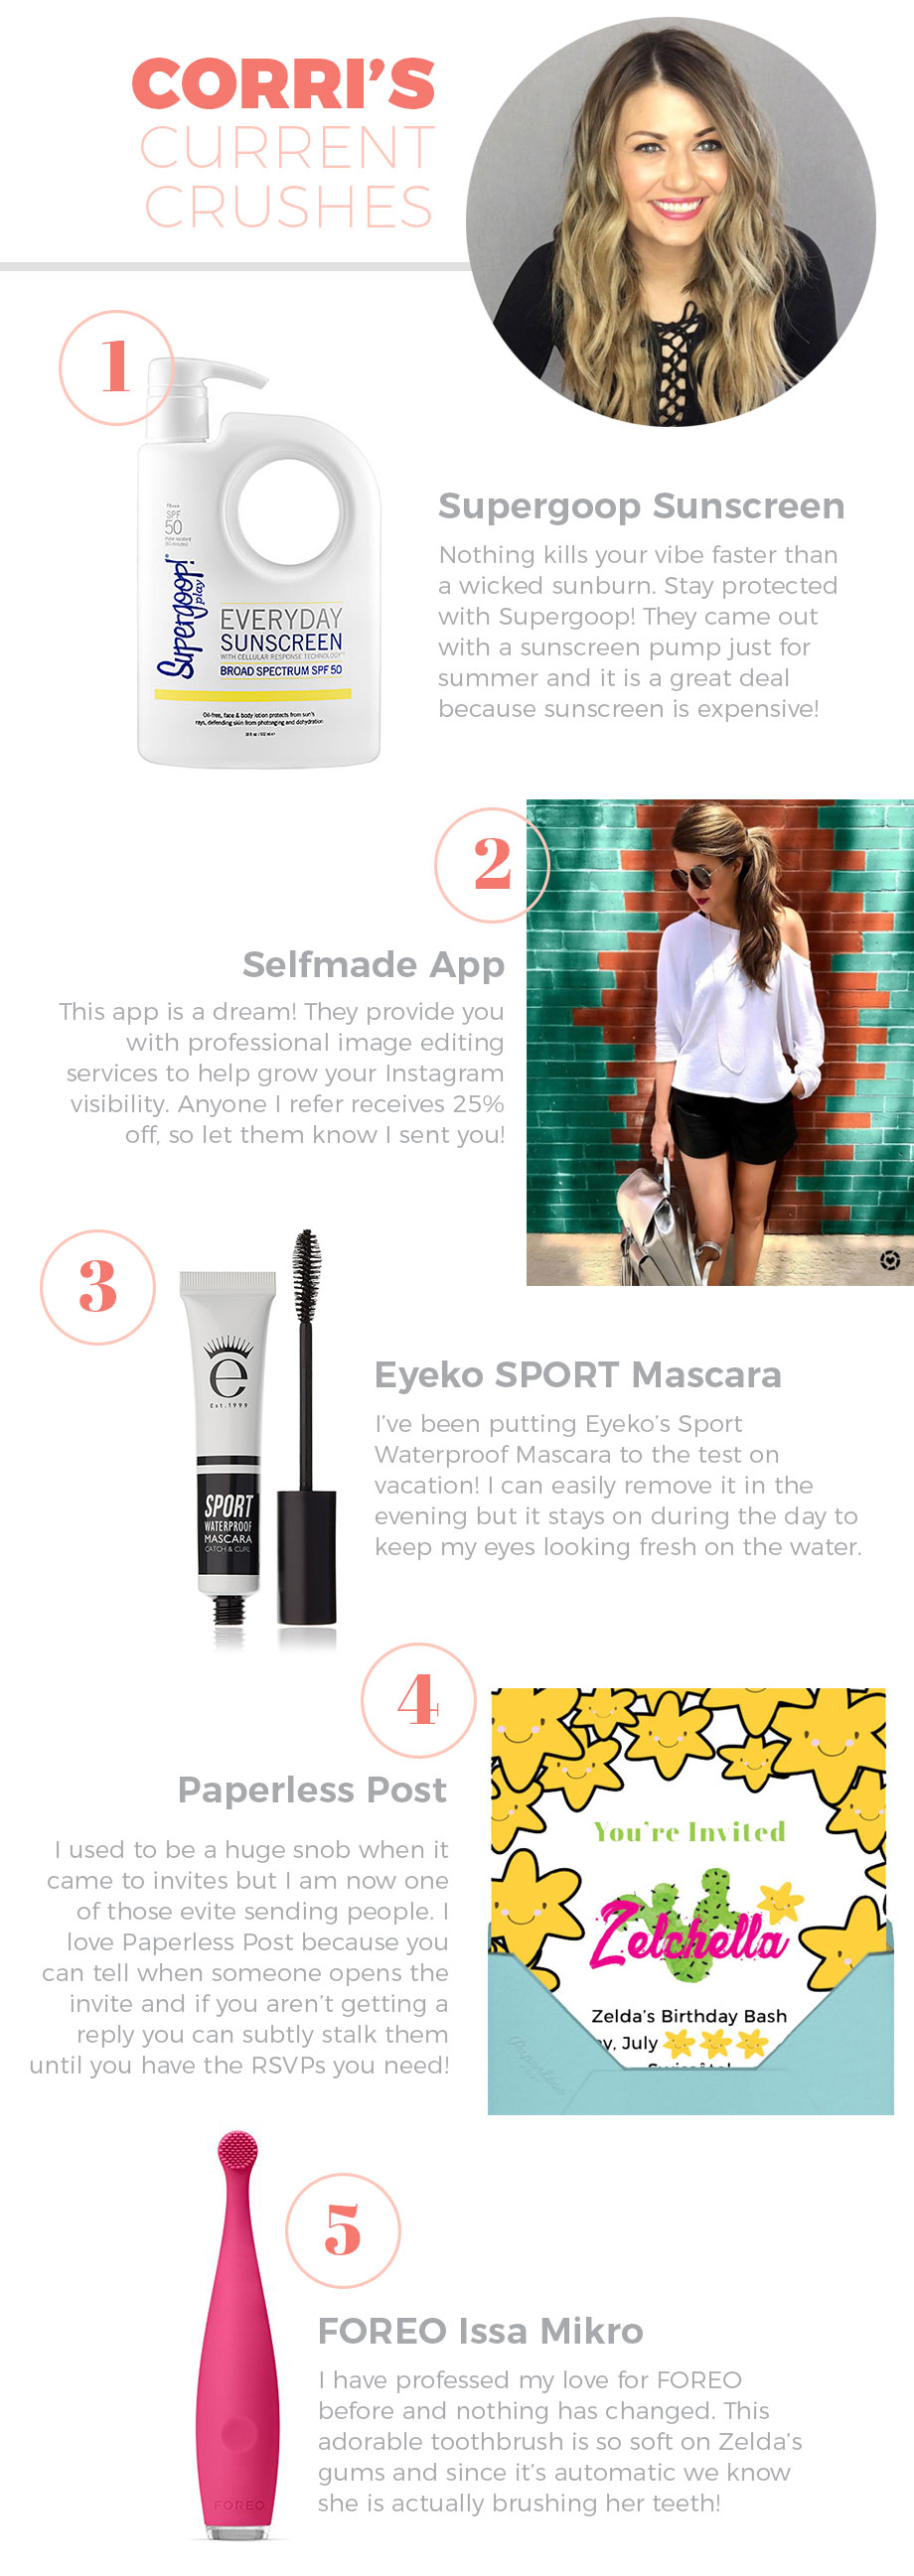 Supergoop Sunscreen, Paperless Post and more things Corri is crushing on in July!